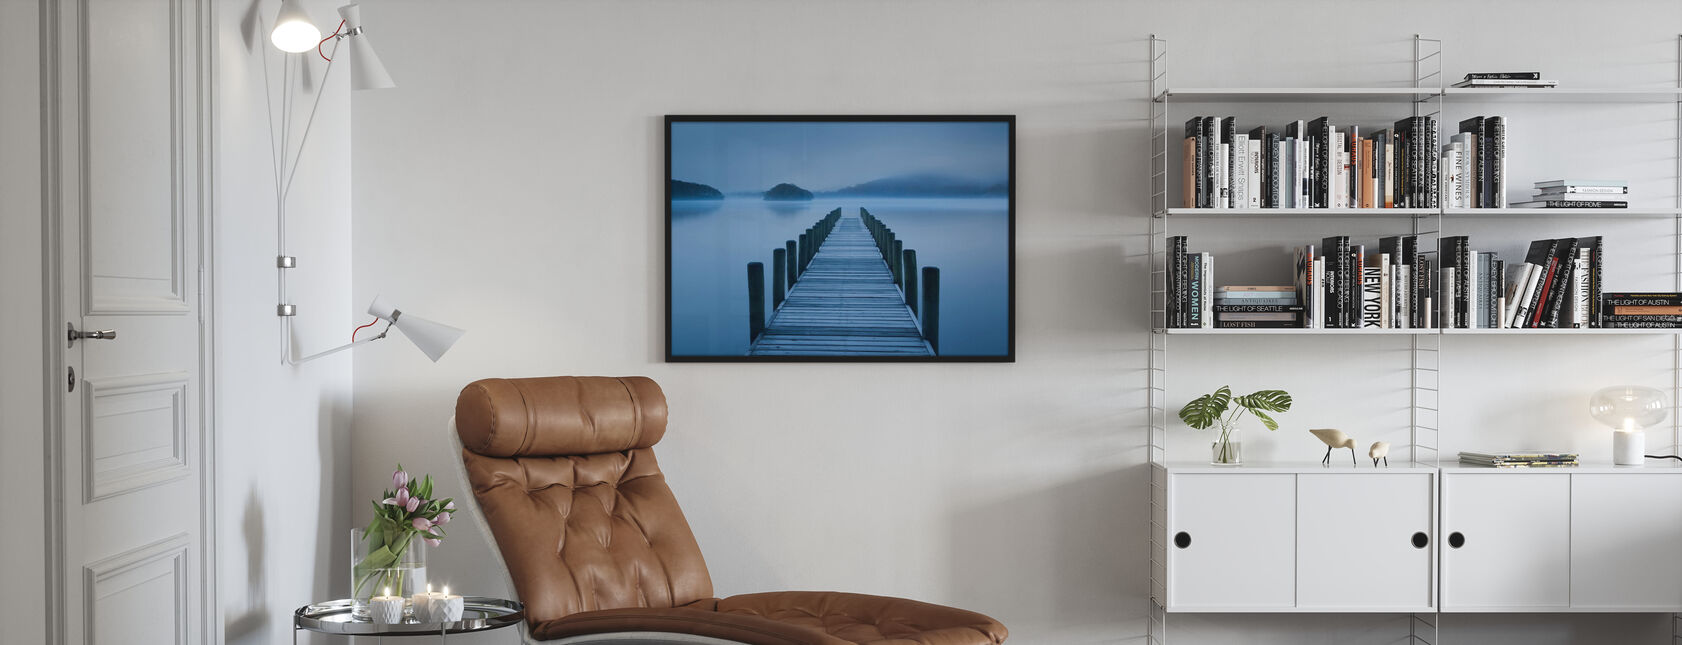 Blue Hour at the Lake - Poster - Living Room